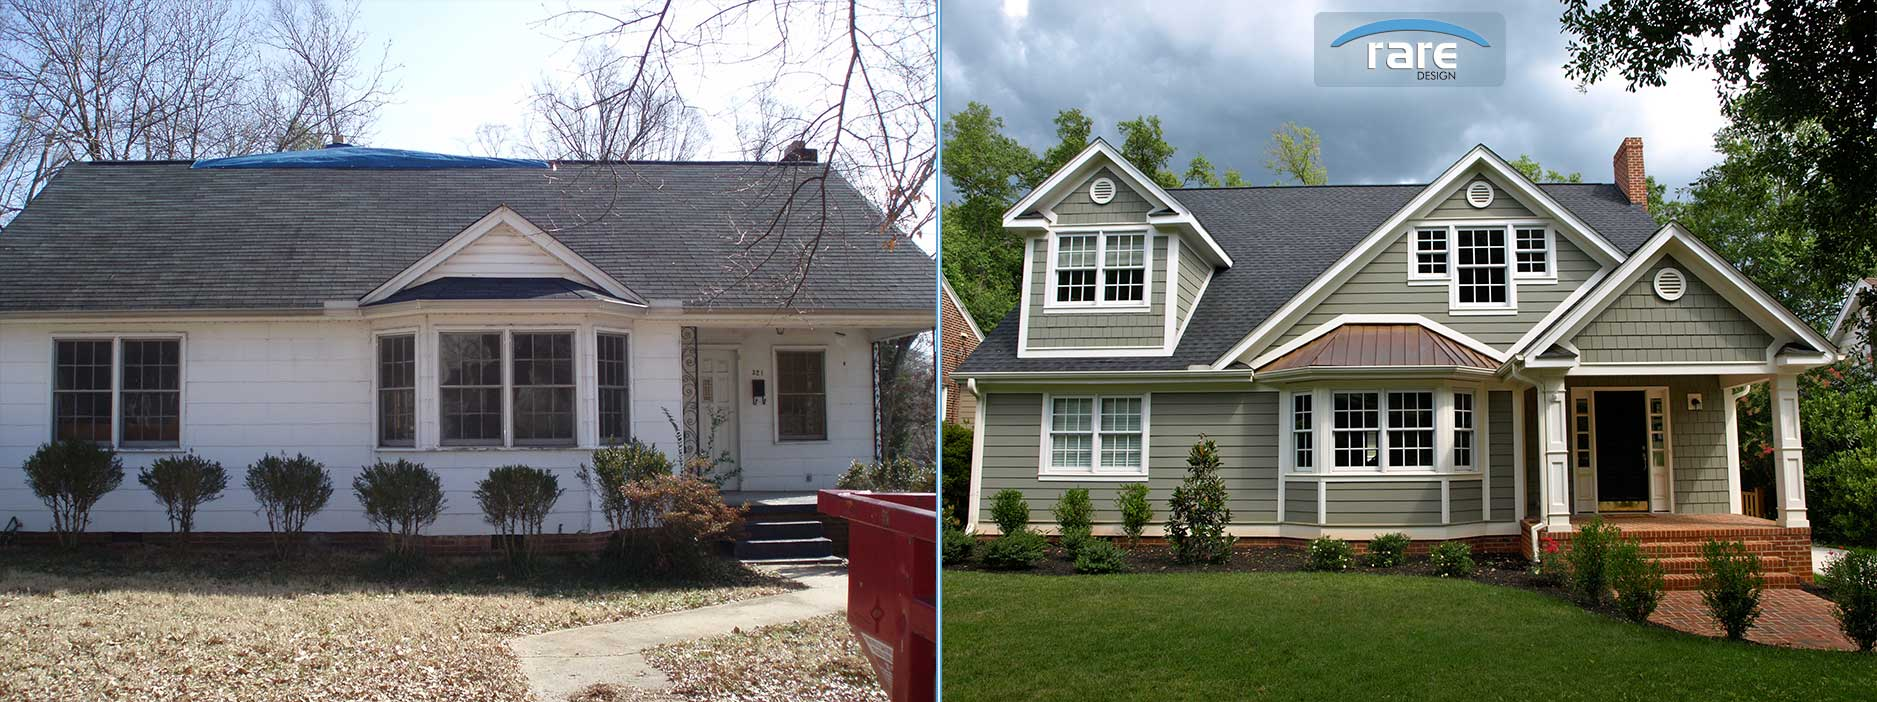 Greenville Home Remodel Rare Design Before And After Kupersmith Front Elevation